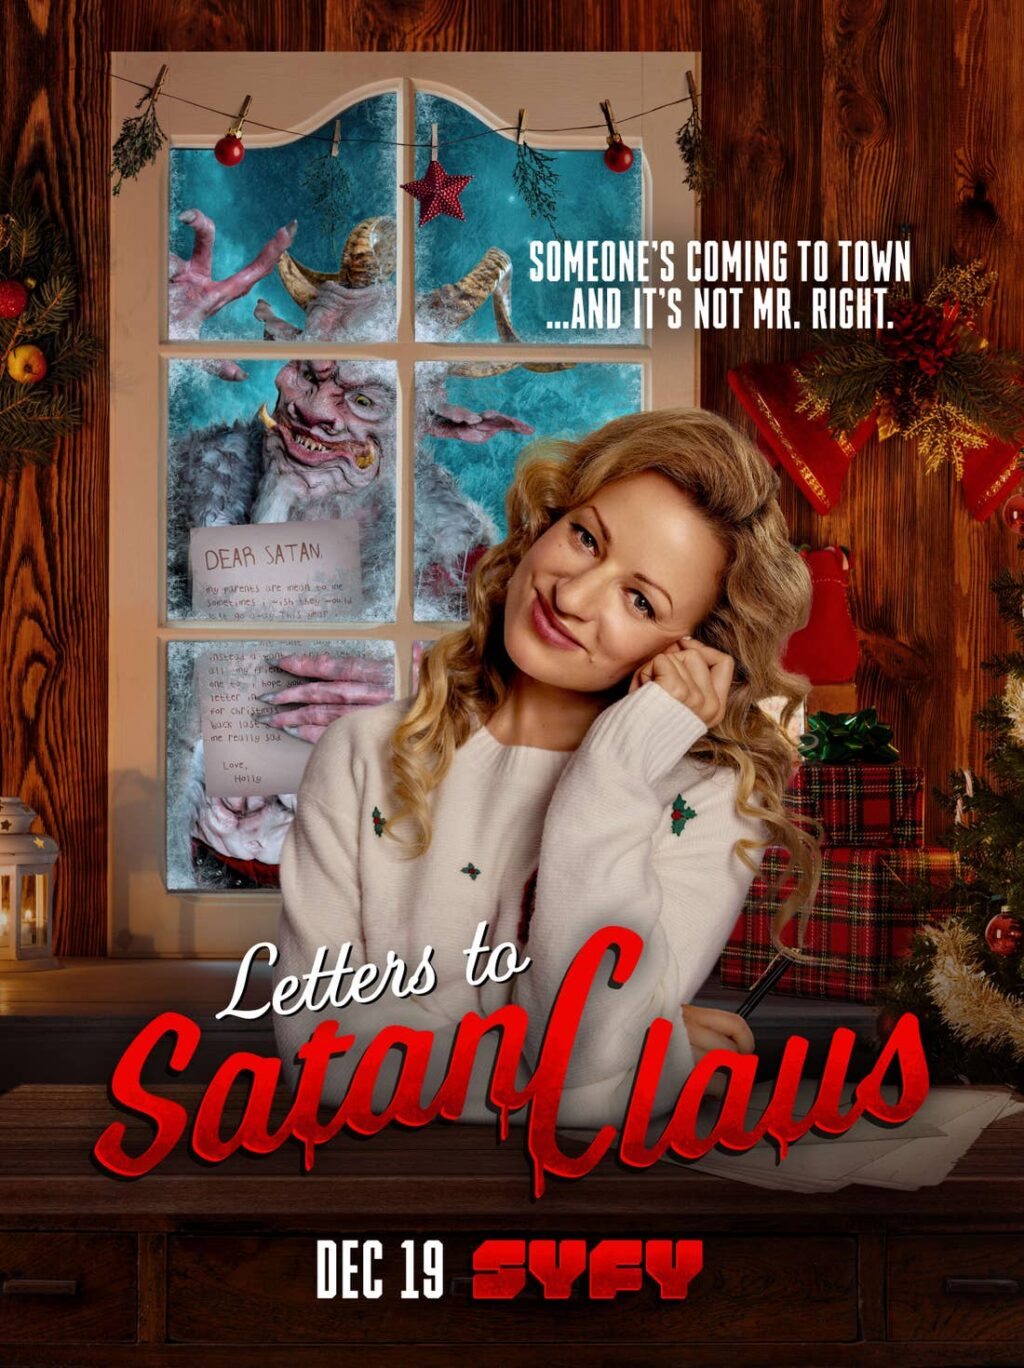 Letter to Satan Claus 1024x1368 - Trailer: Syfy Delivers LETTERS TO SATAN CLAUS on December 19th